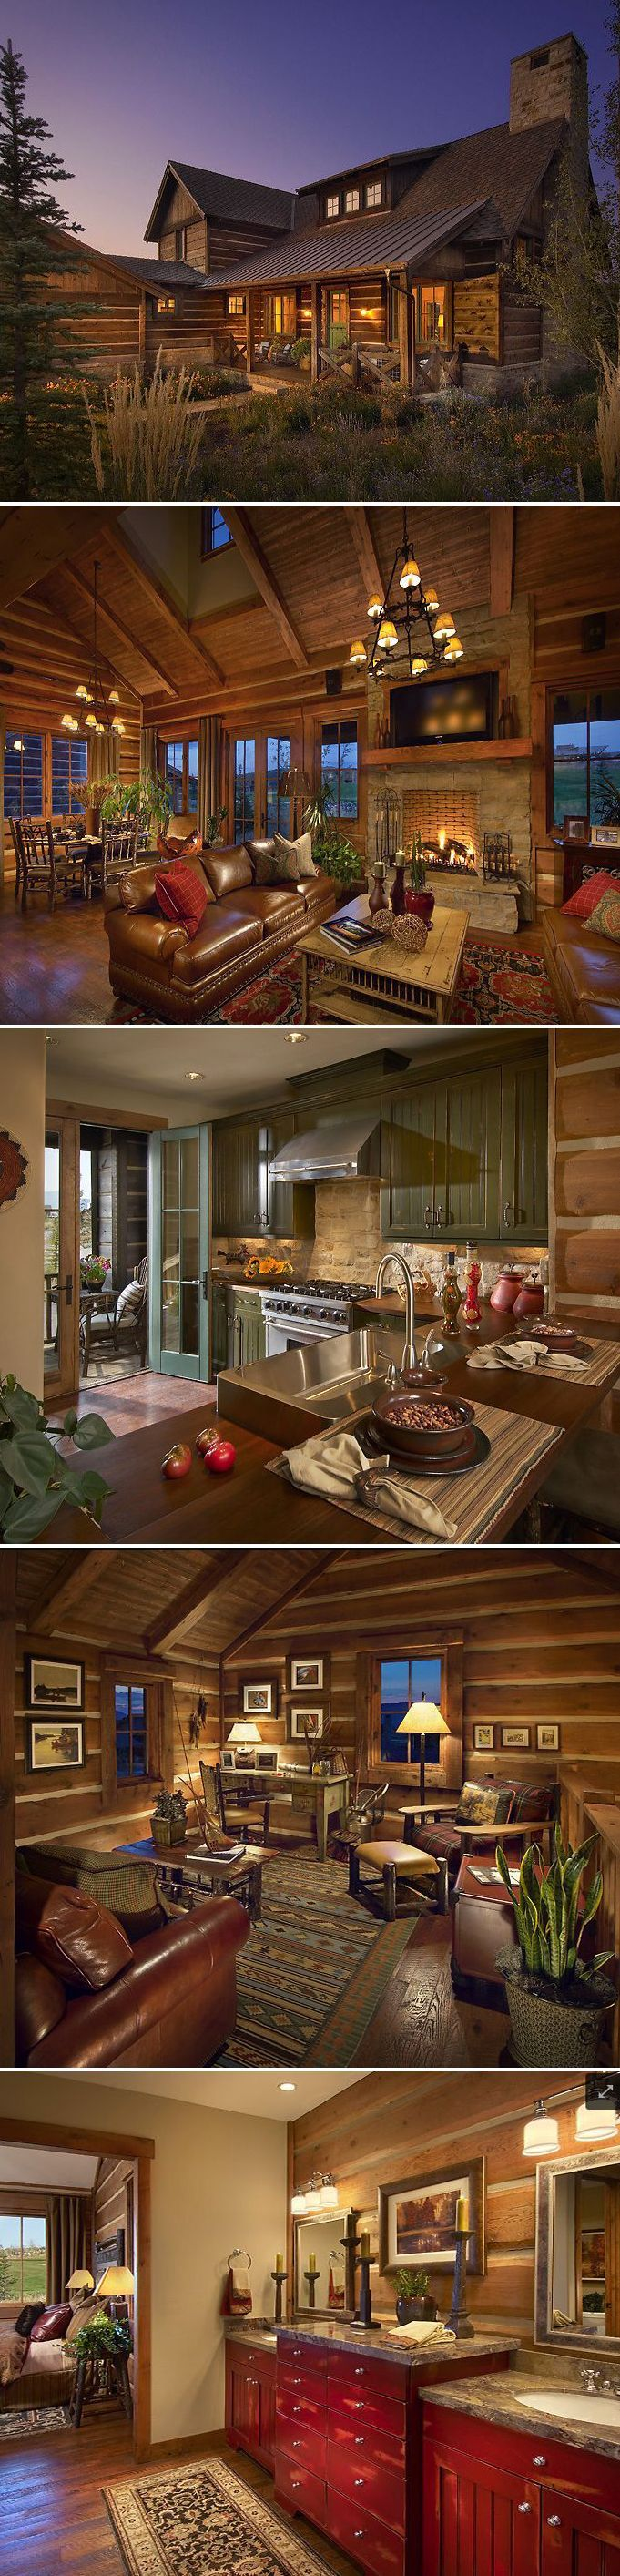 1000+ ideas about Log Home Interiors on Pinterest.